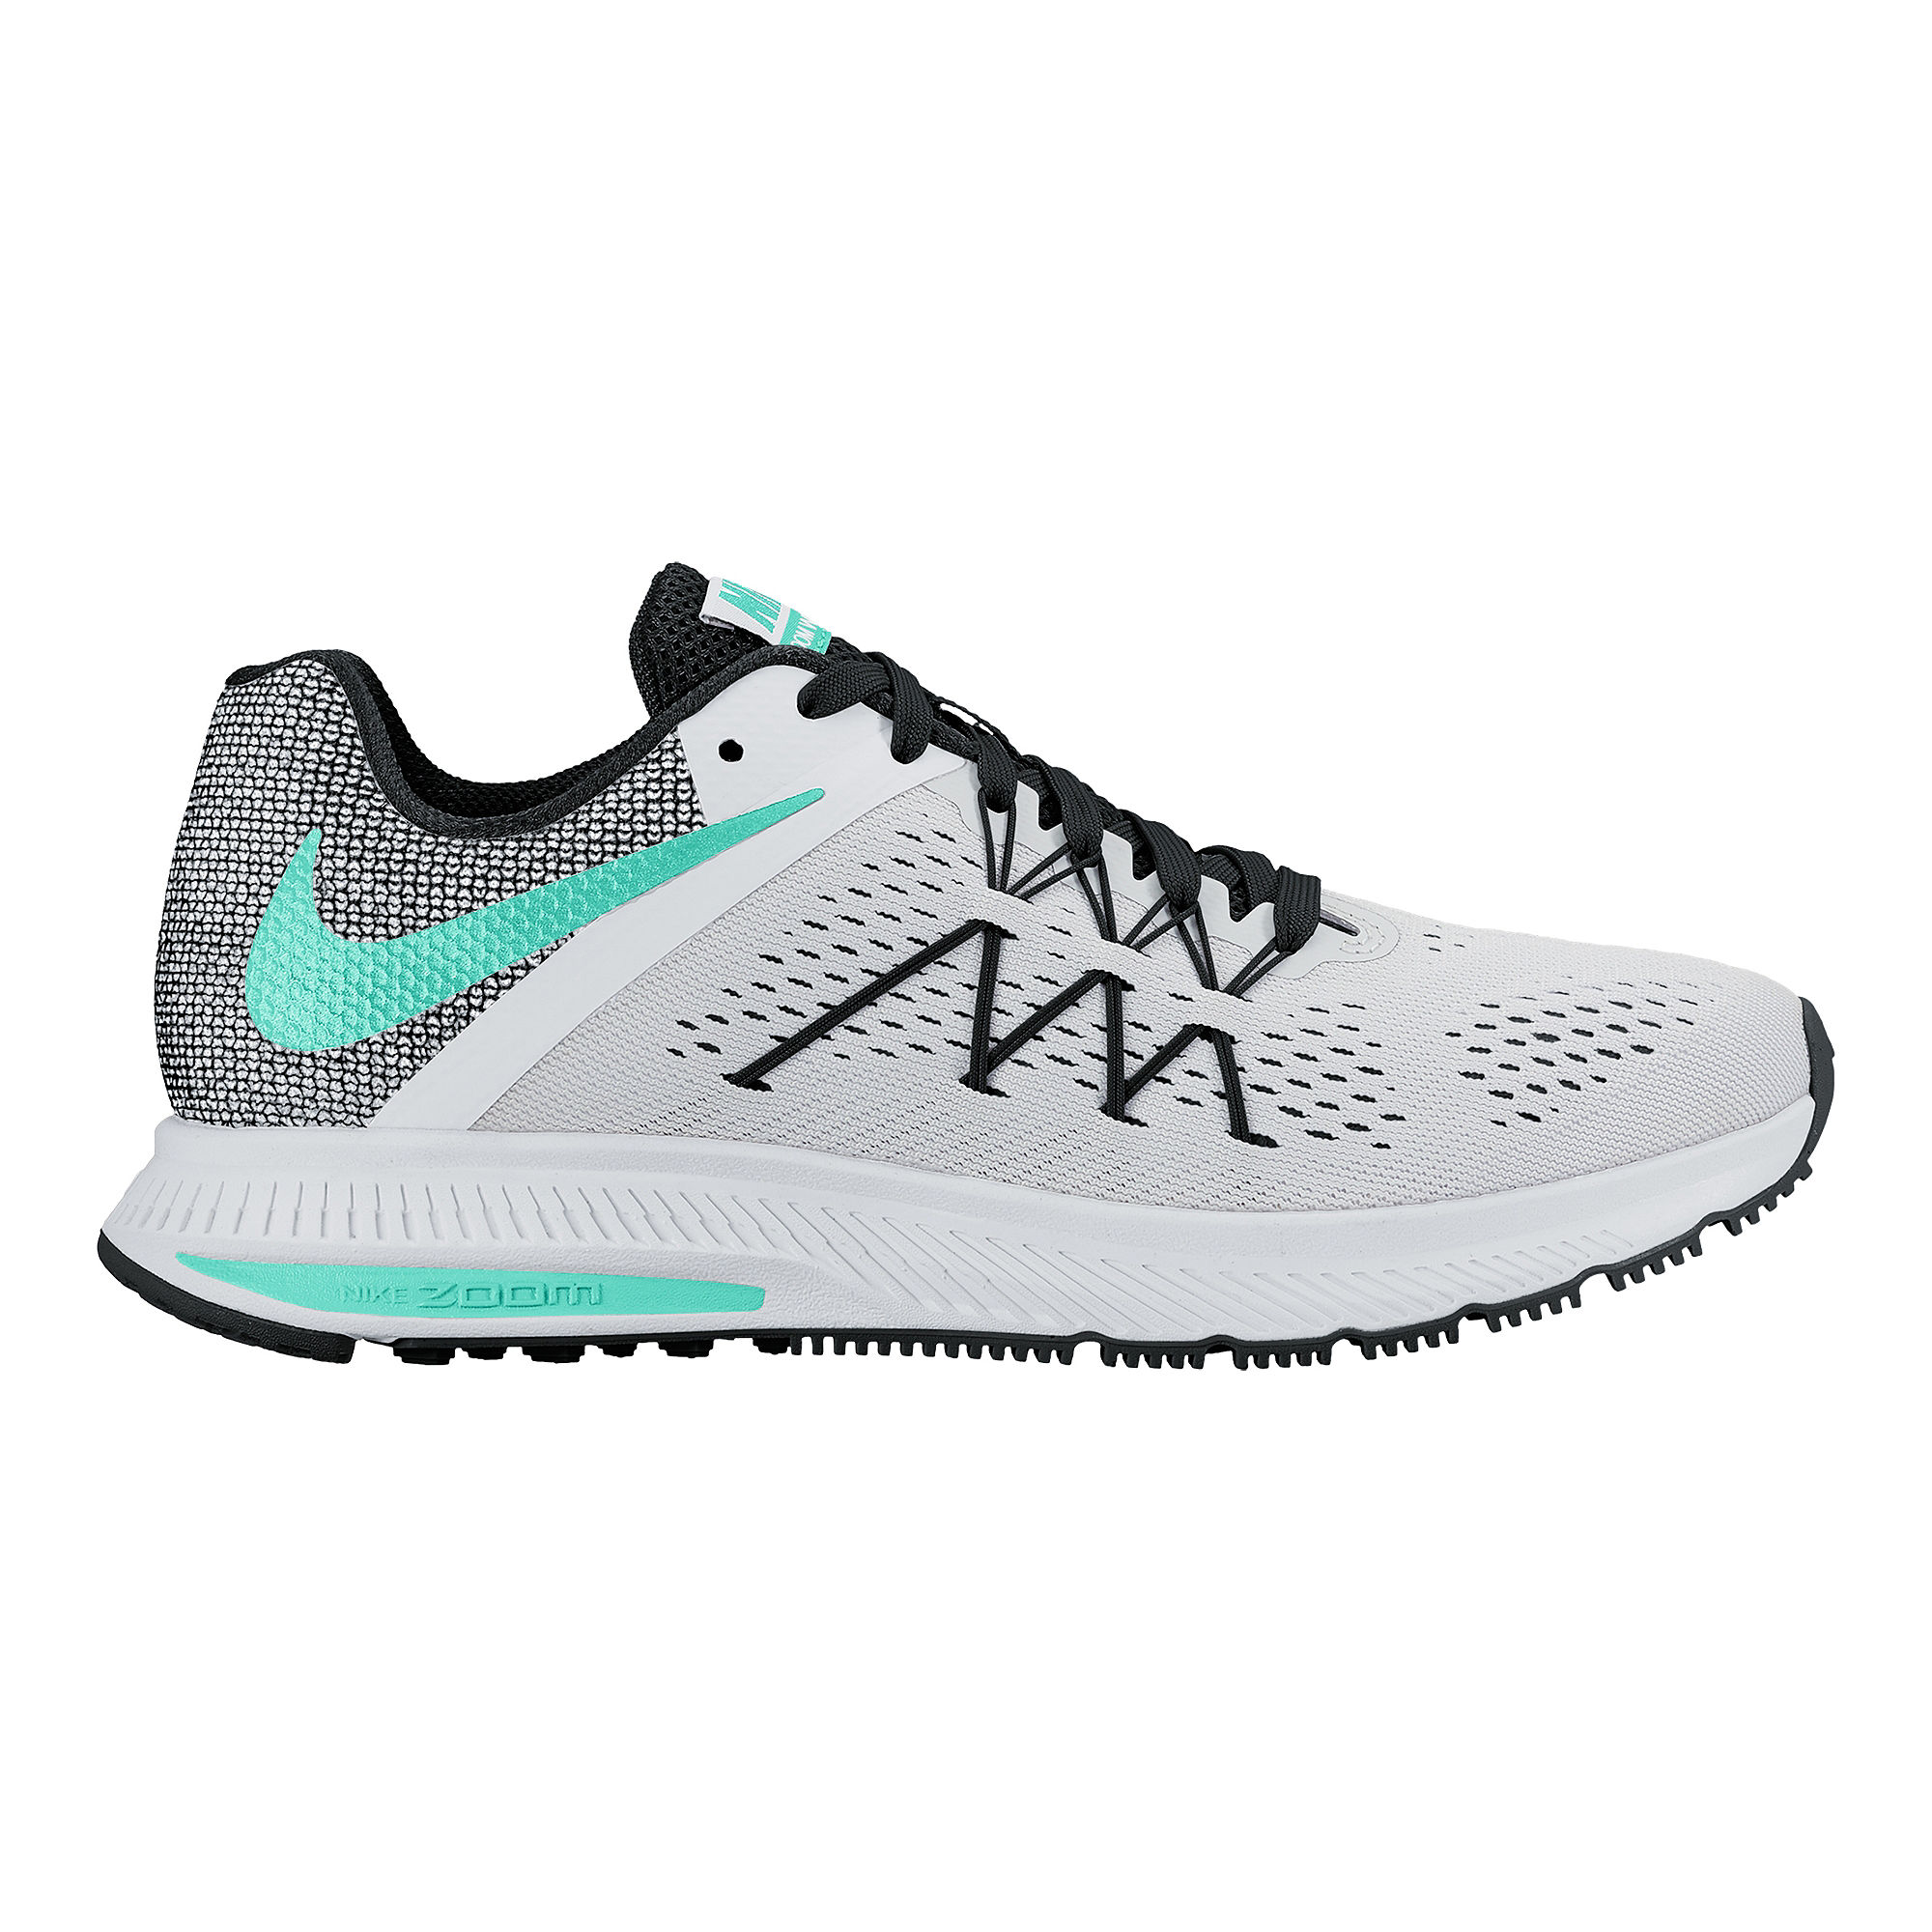 premium selection 1cd32 6f44e ... reduced upc 884751199530 product image for nike zoom winflo 3 womens  running shoes upcitemdb a0967 cf0cd